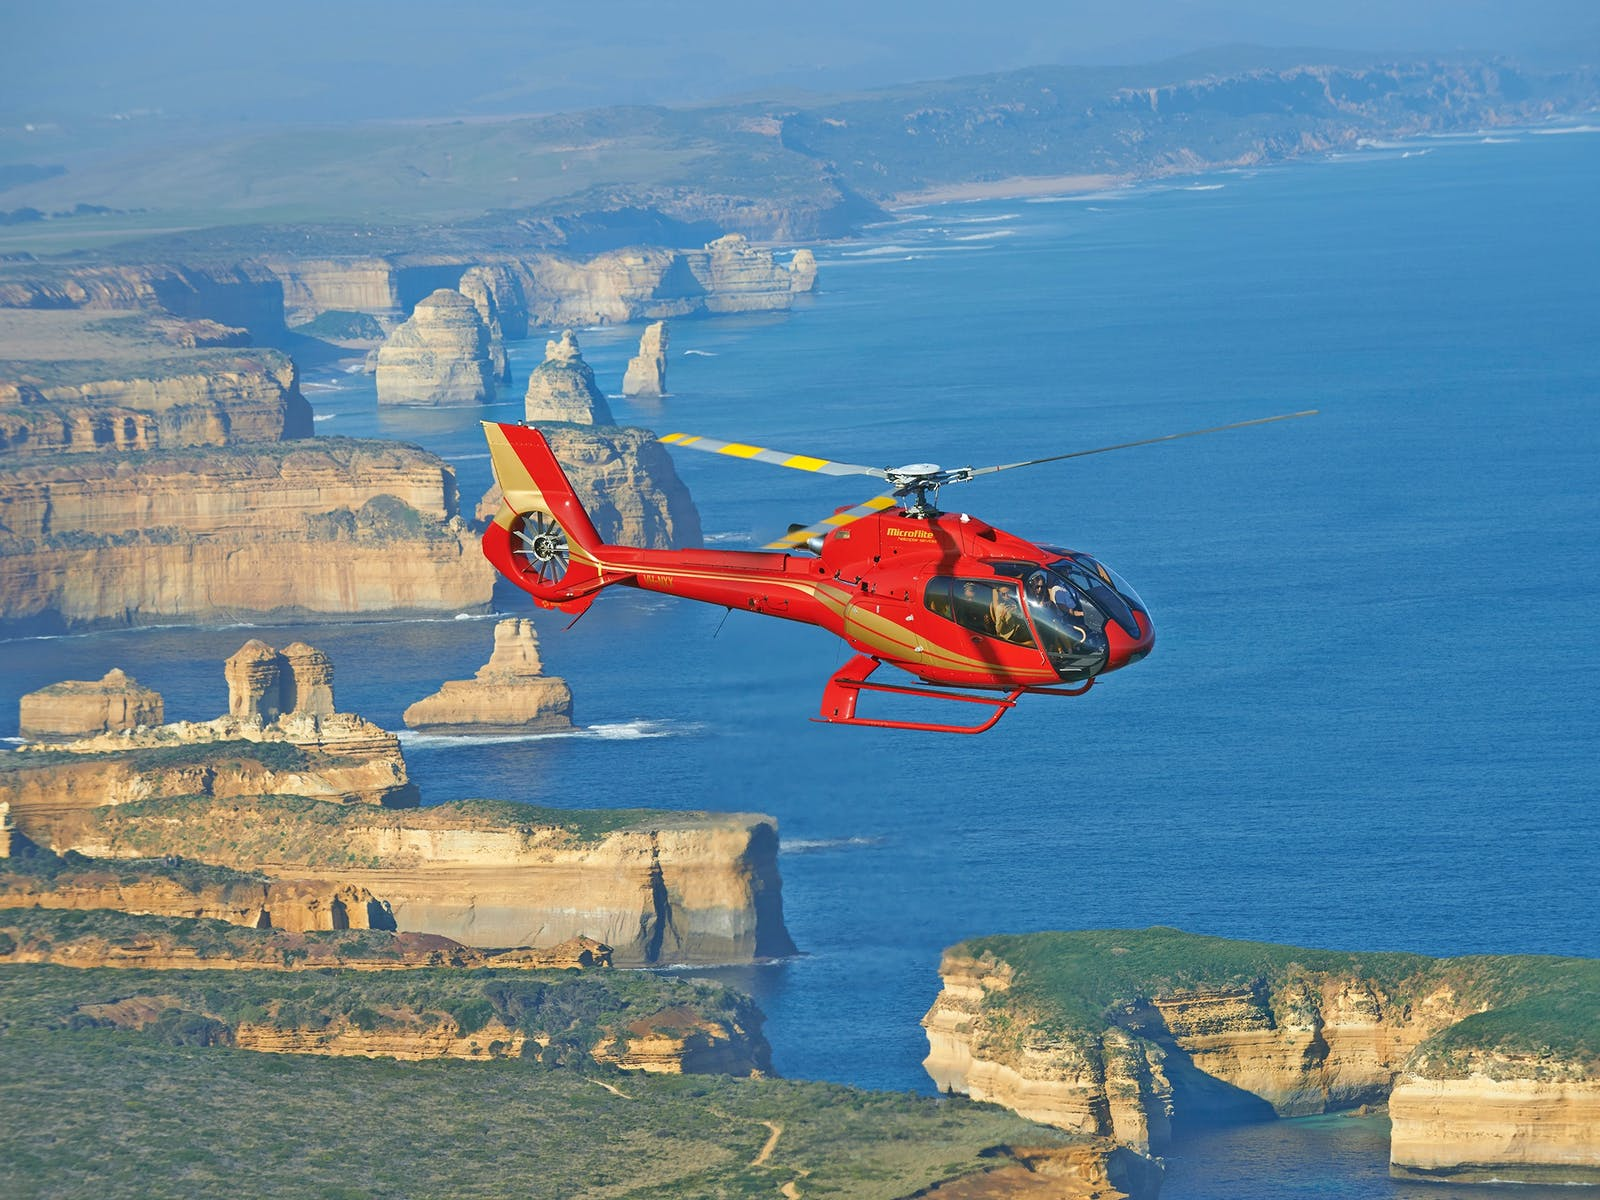 Take the scenic route and visit the 12 Apostles in a helicopter